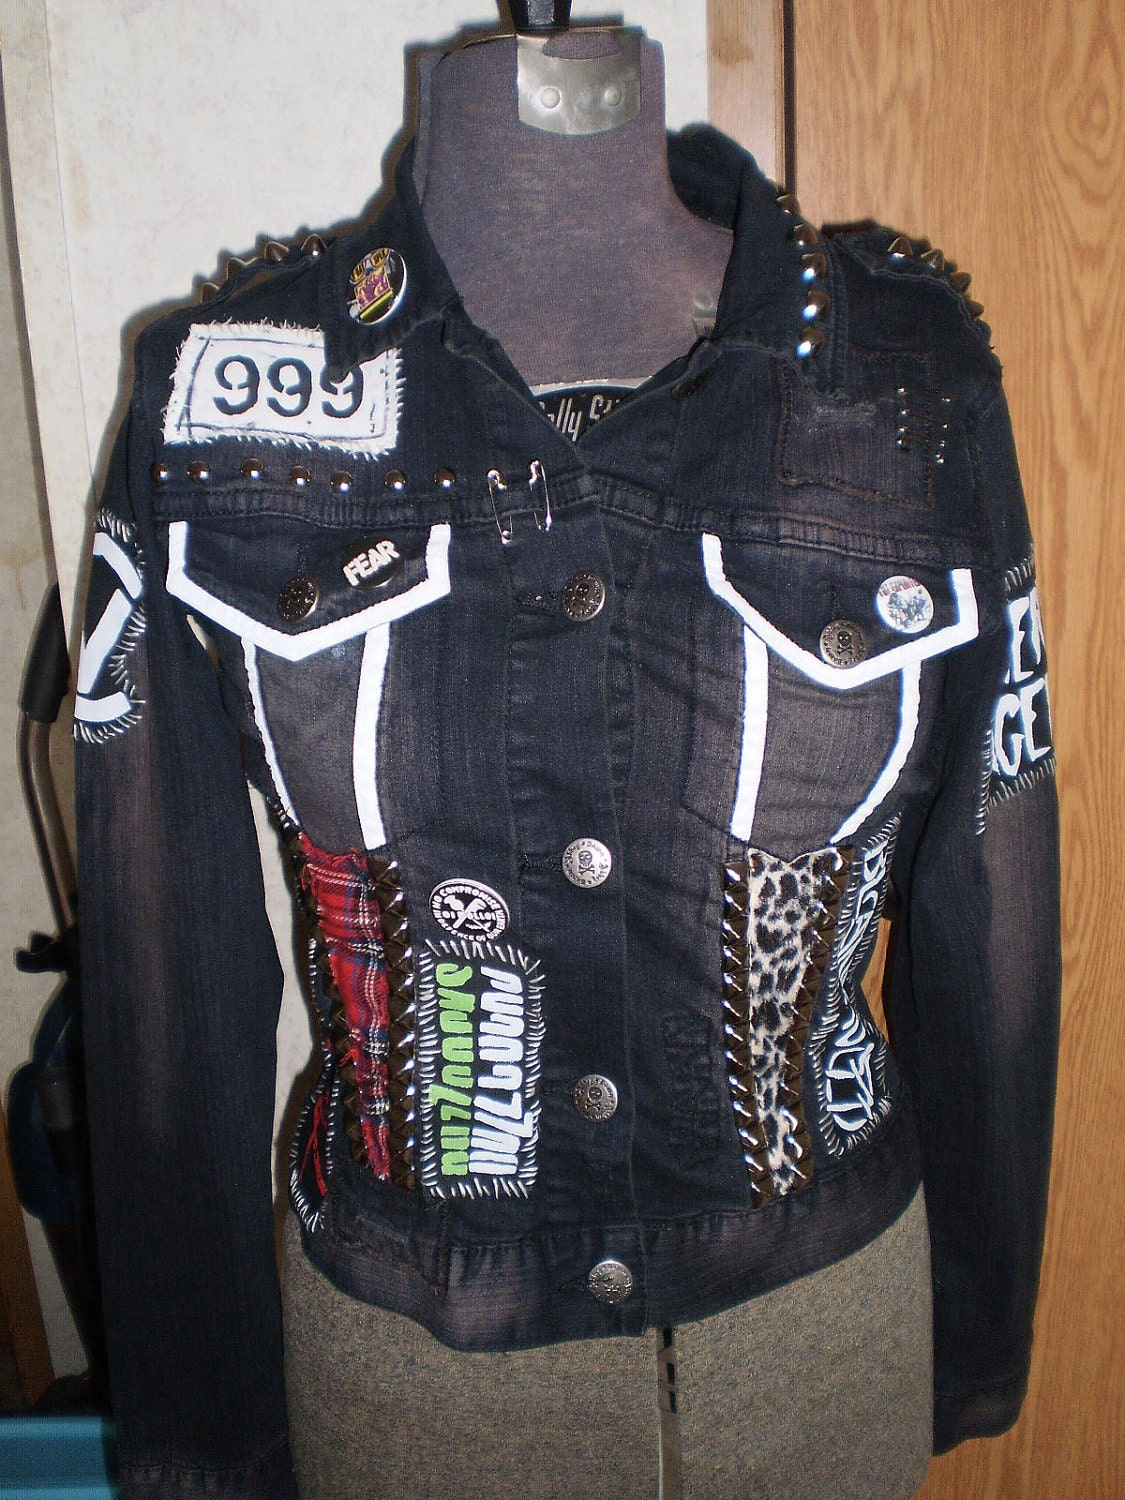 A denim jacket, distressed T-shirt and distressed, studded jeans became a visual representation for rock bands anti-establishment anthems. and distressed denim make Levi's Authentic Trucker Jacket the ultimate punk-rock piece. Pair it with a dark skinny or flowing frock—and start rocking.